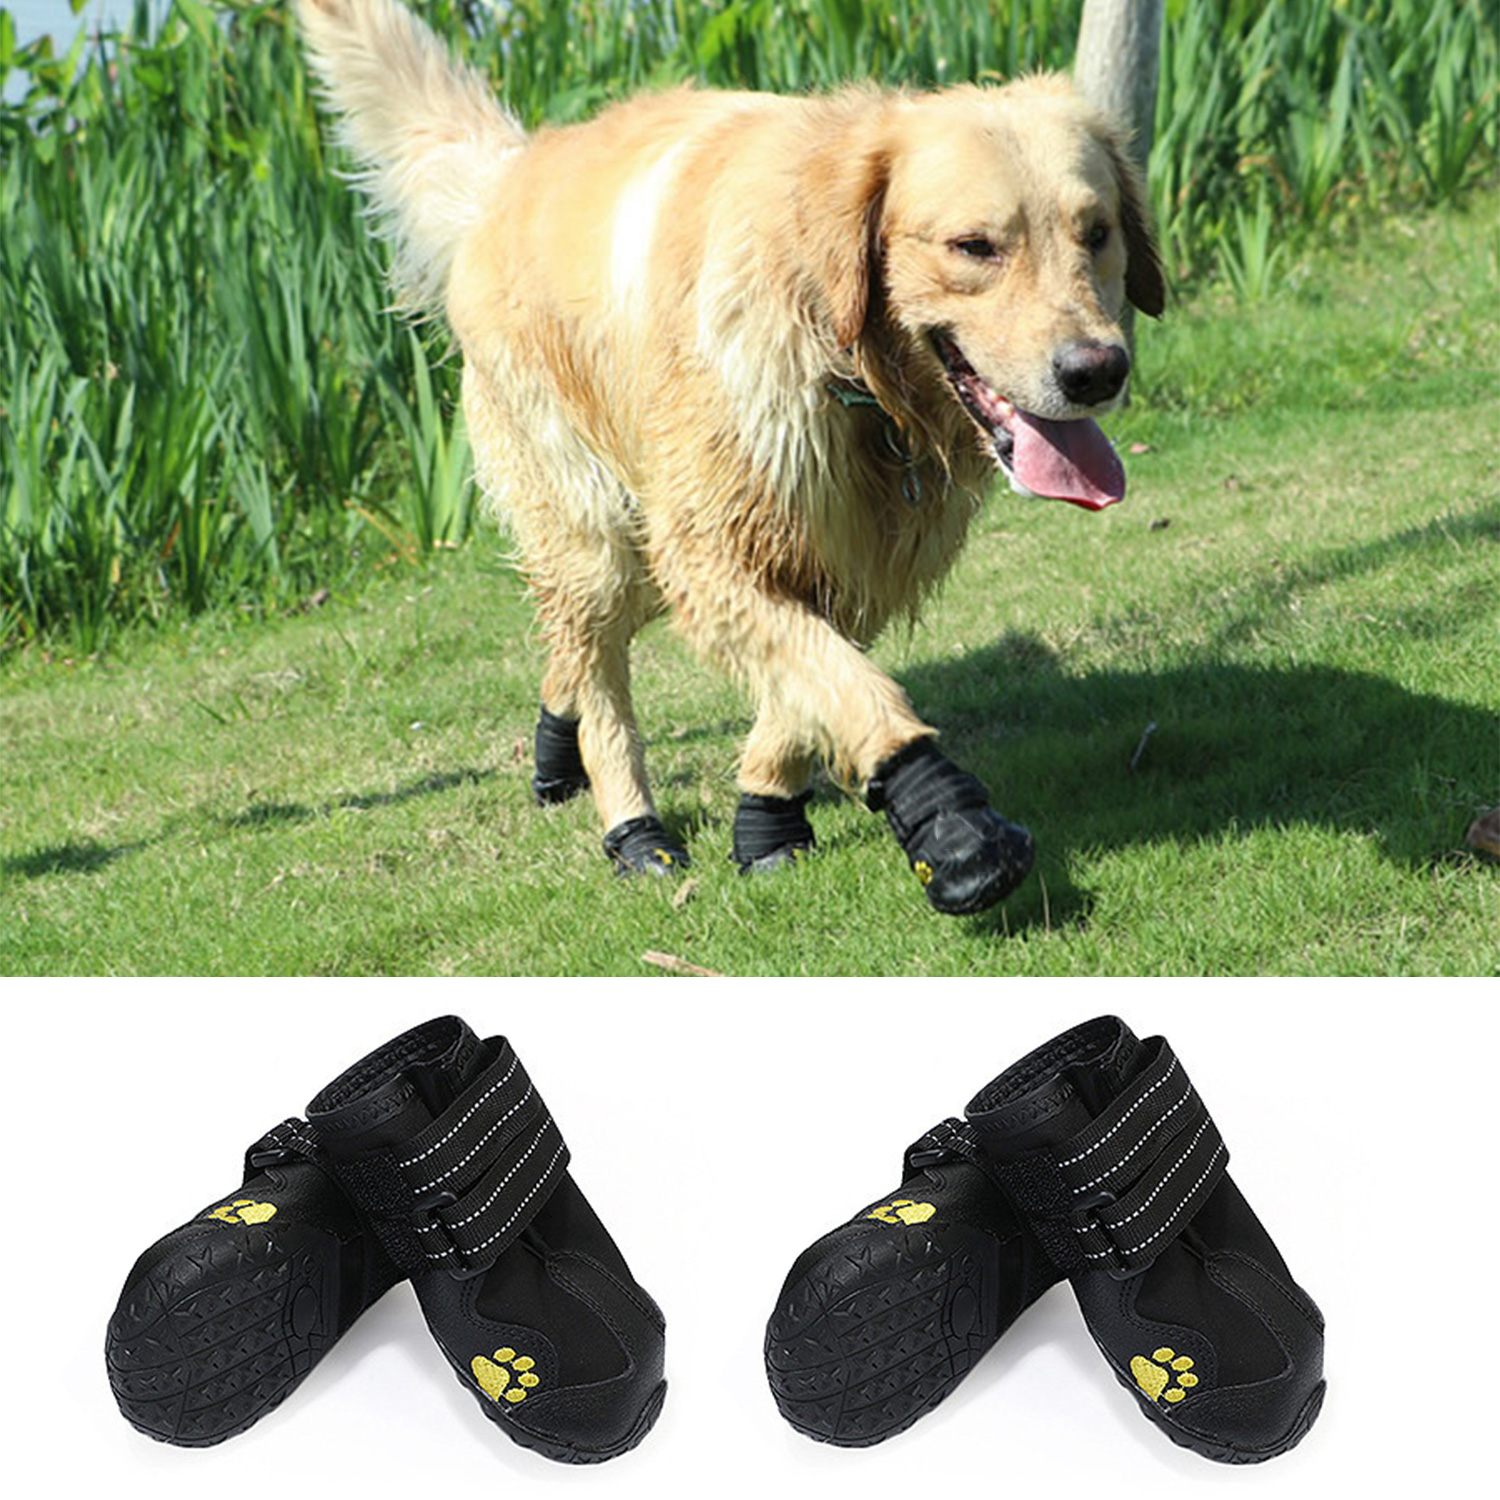 5# Set of 4 Waterproof Non-Slip Dog Shoes with Wear-resistant and Rugged Anti-Slip Sole for Medium and Large Dogs Black Protective Dog Boots